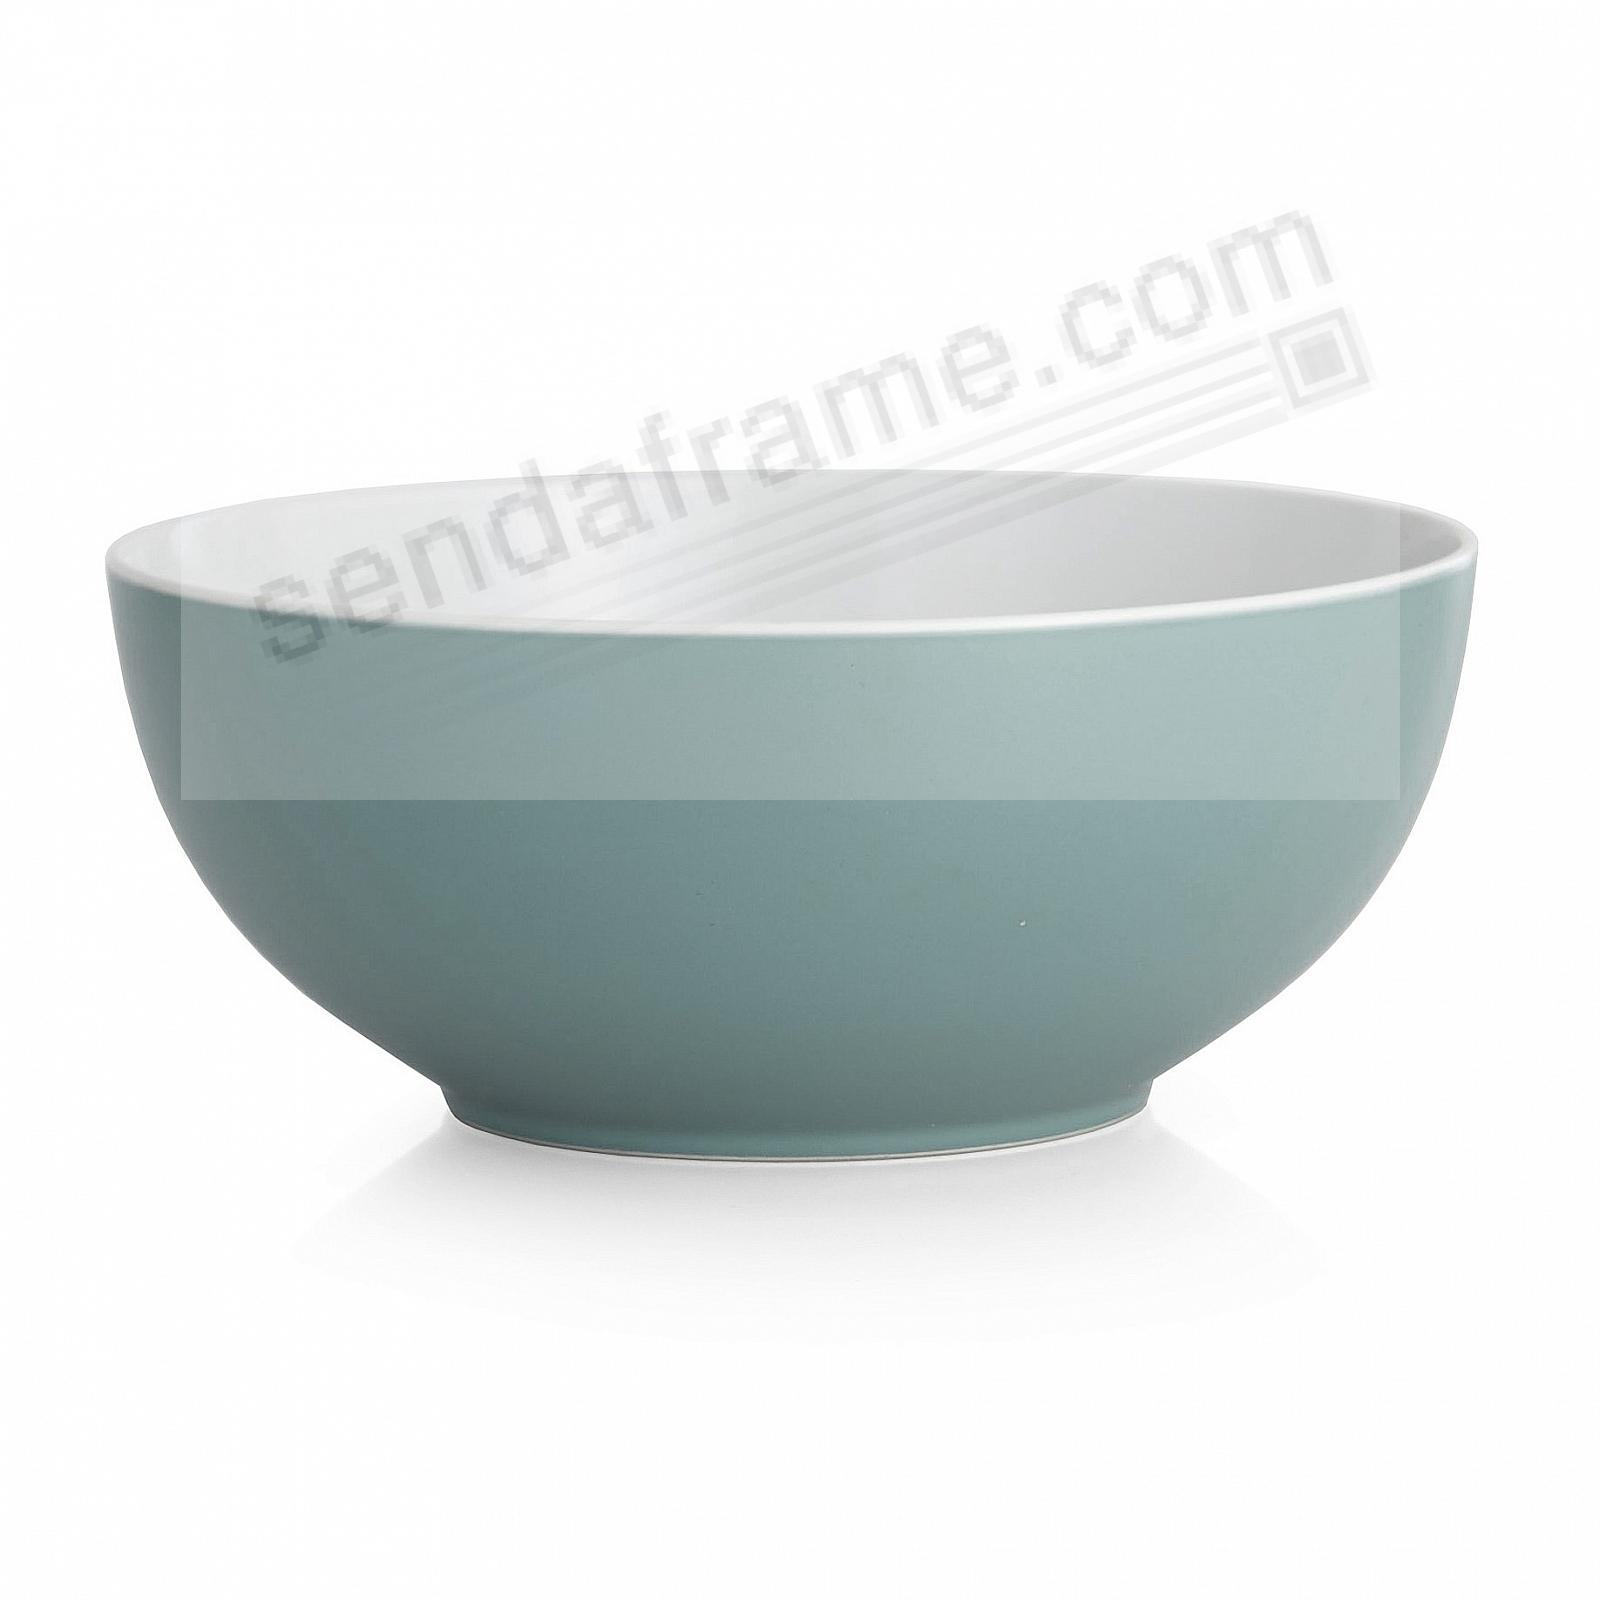 POP DEEP SERVING BOWL OCEAN-BLUE Blue by Nambe®